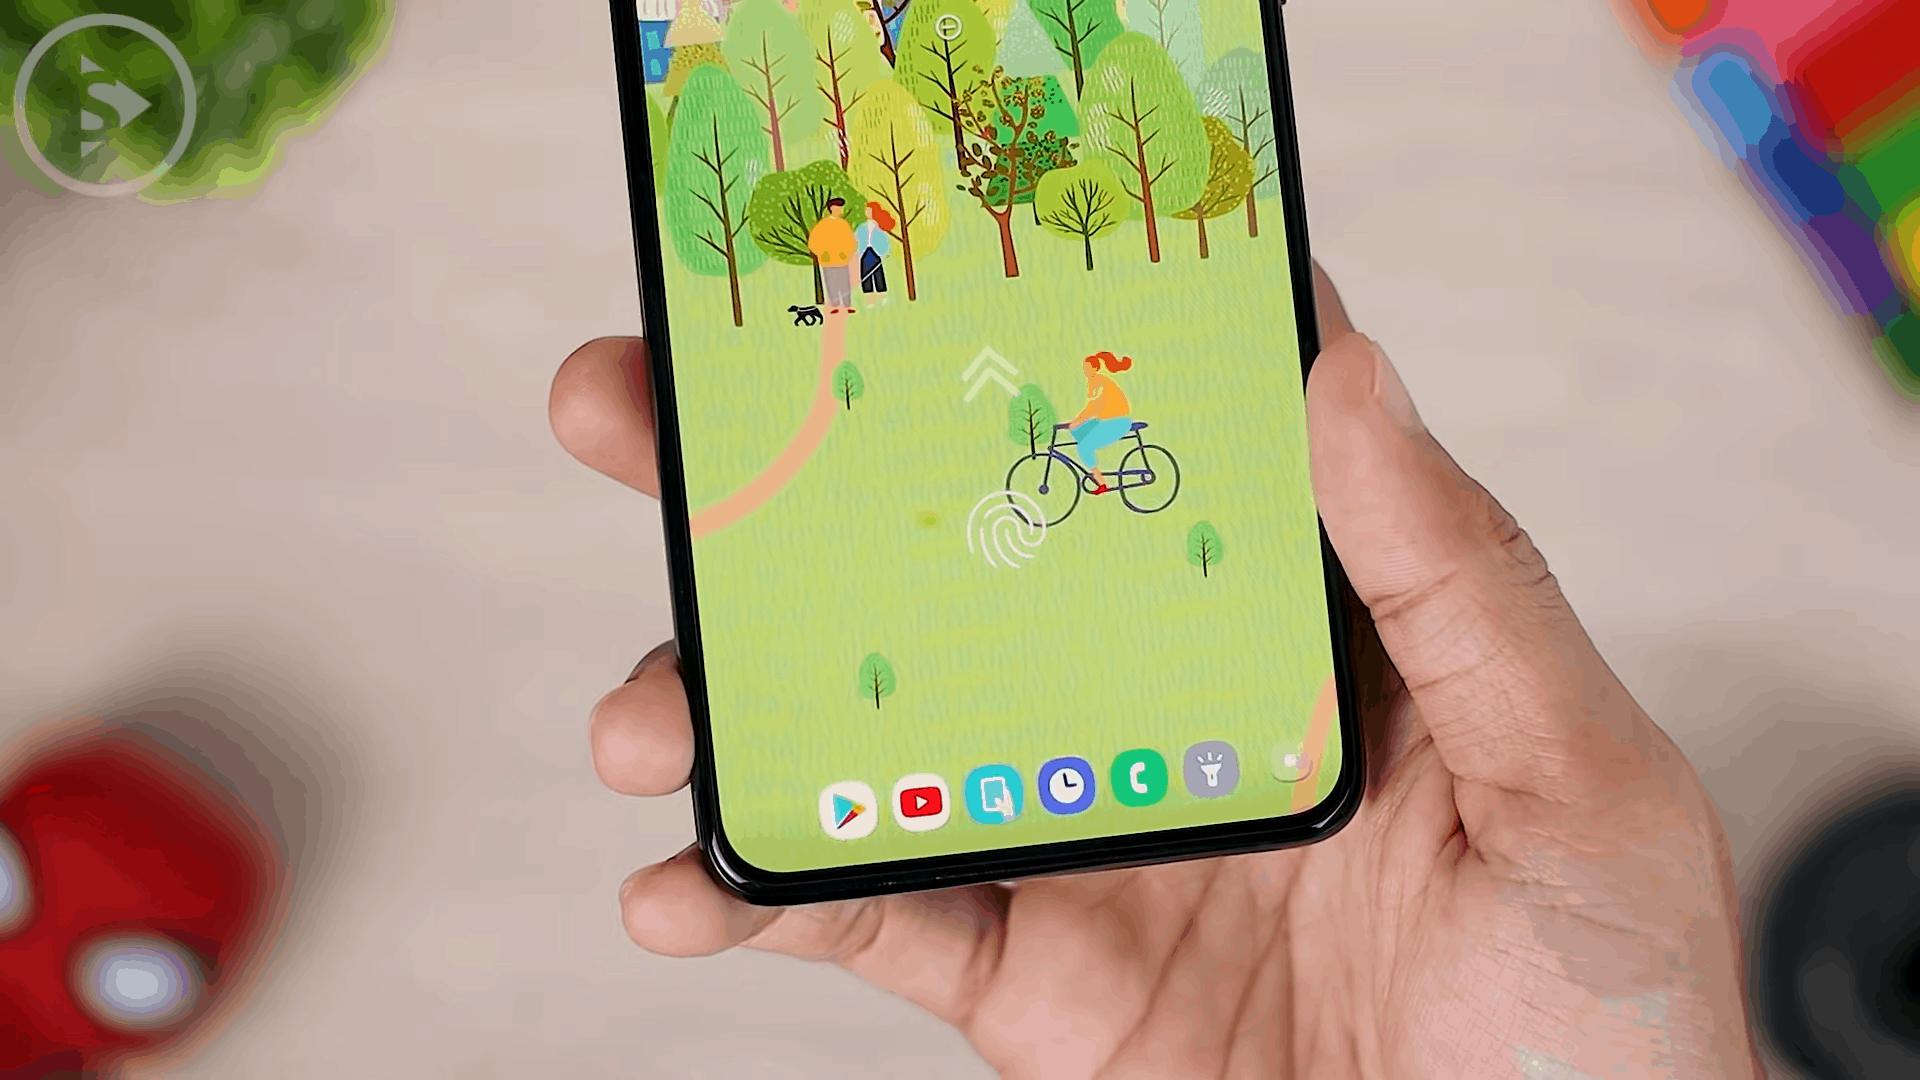 New Options for Multiple Shortcuts on Lockscreen - 8 COOL Features in the LATEST Good Lock Update April 2021